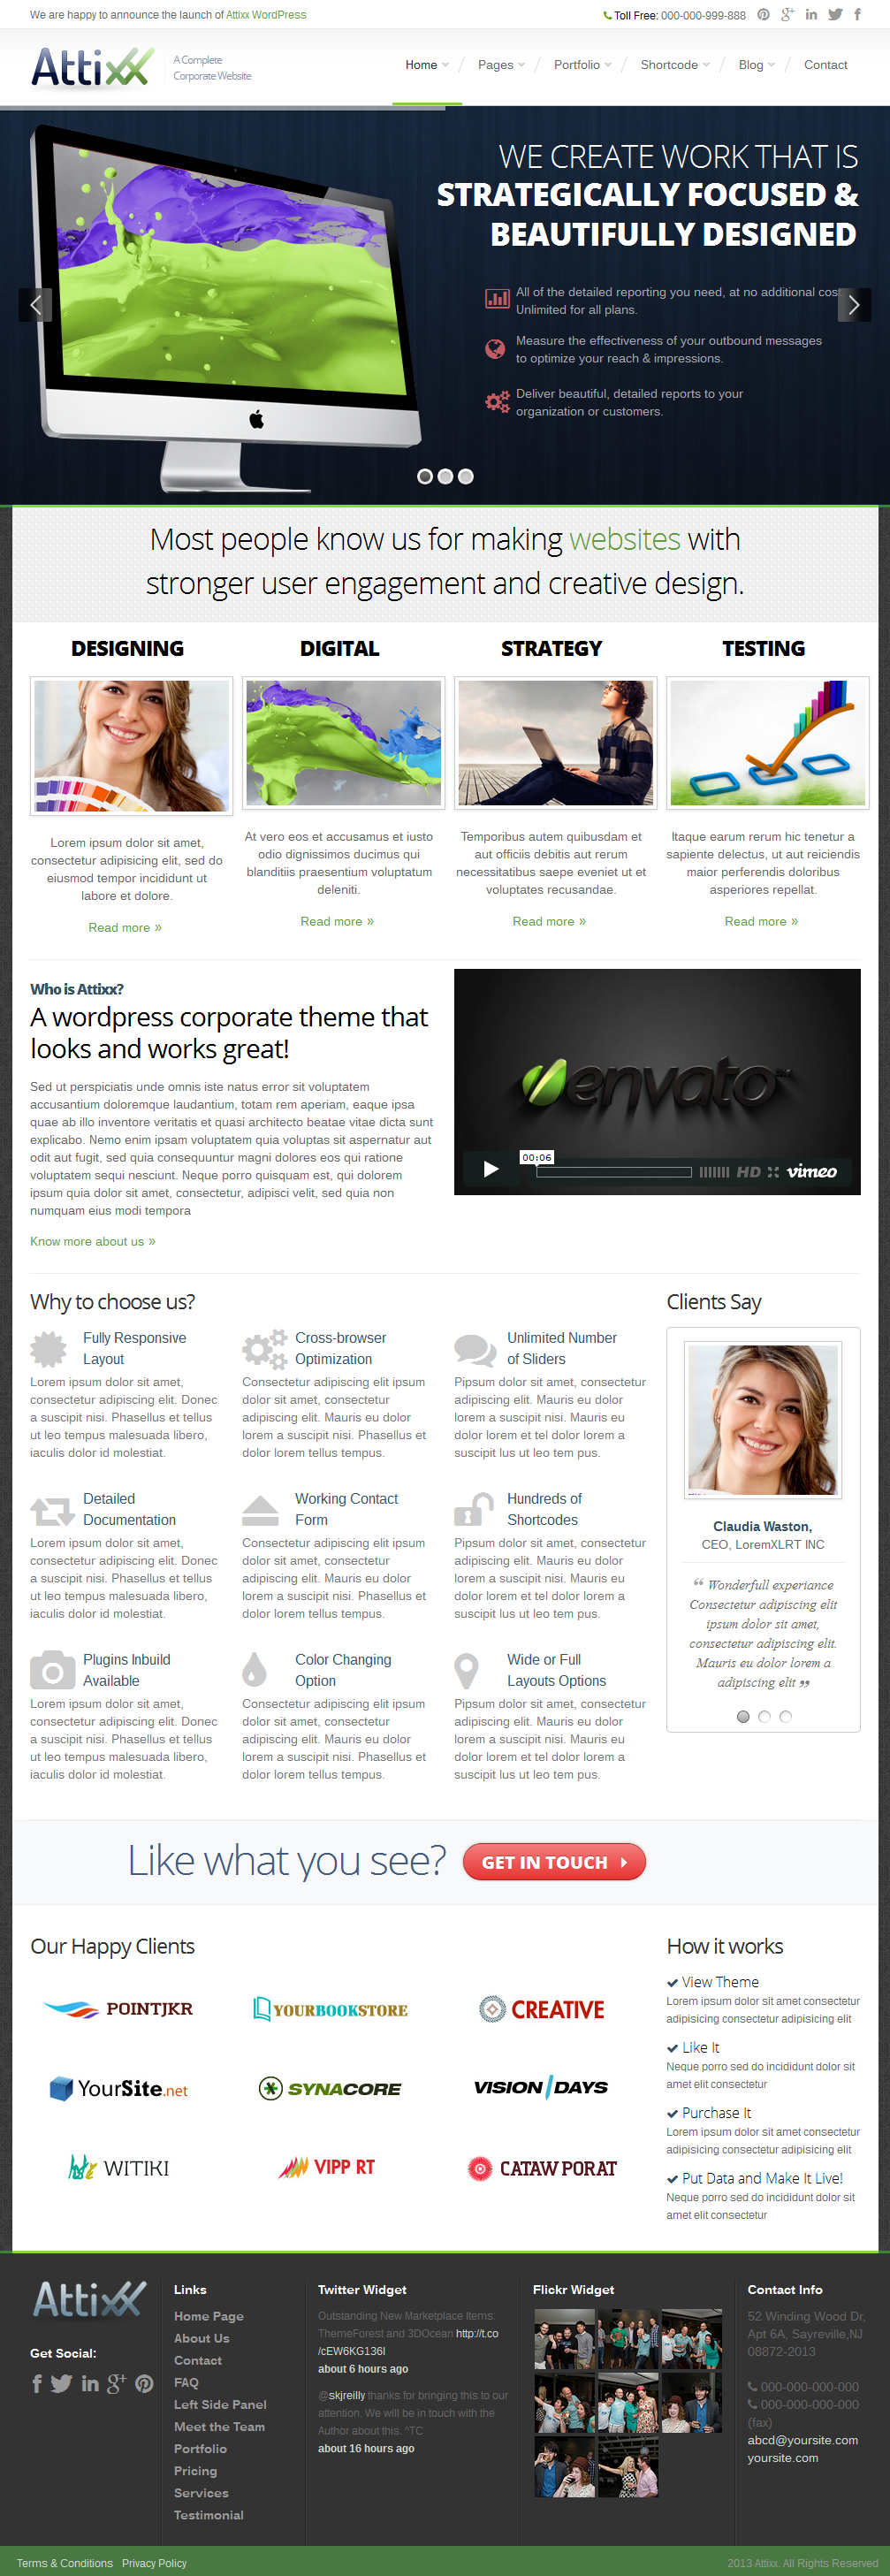 Attixx - Responsive Corporate WordPress Theme